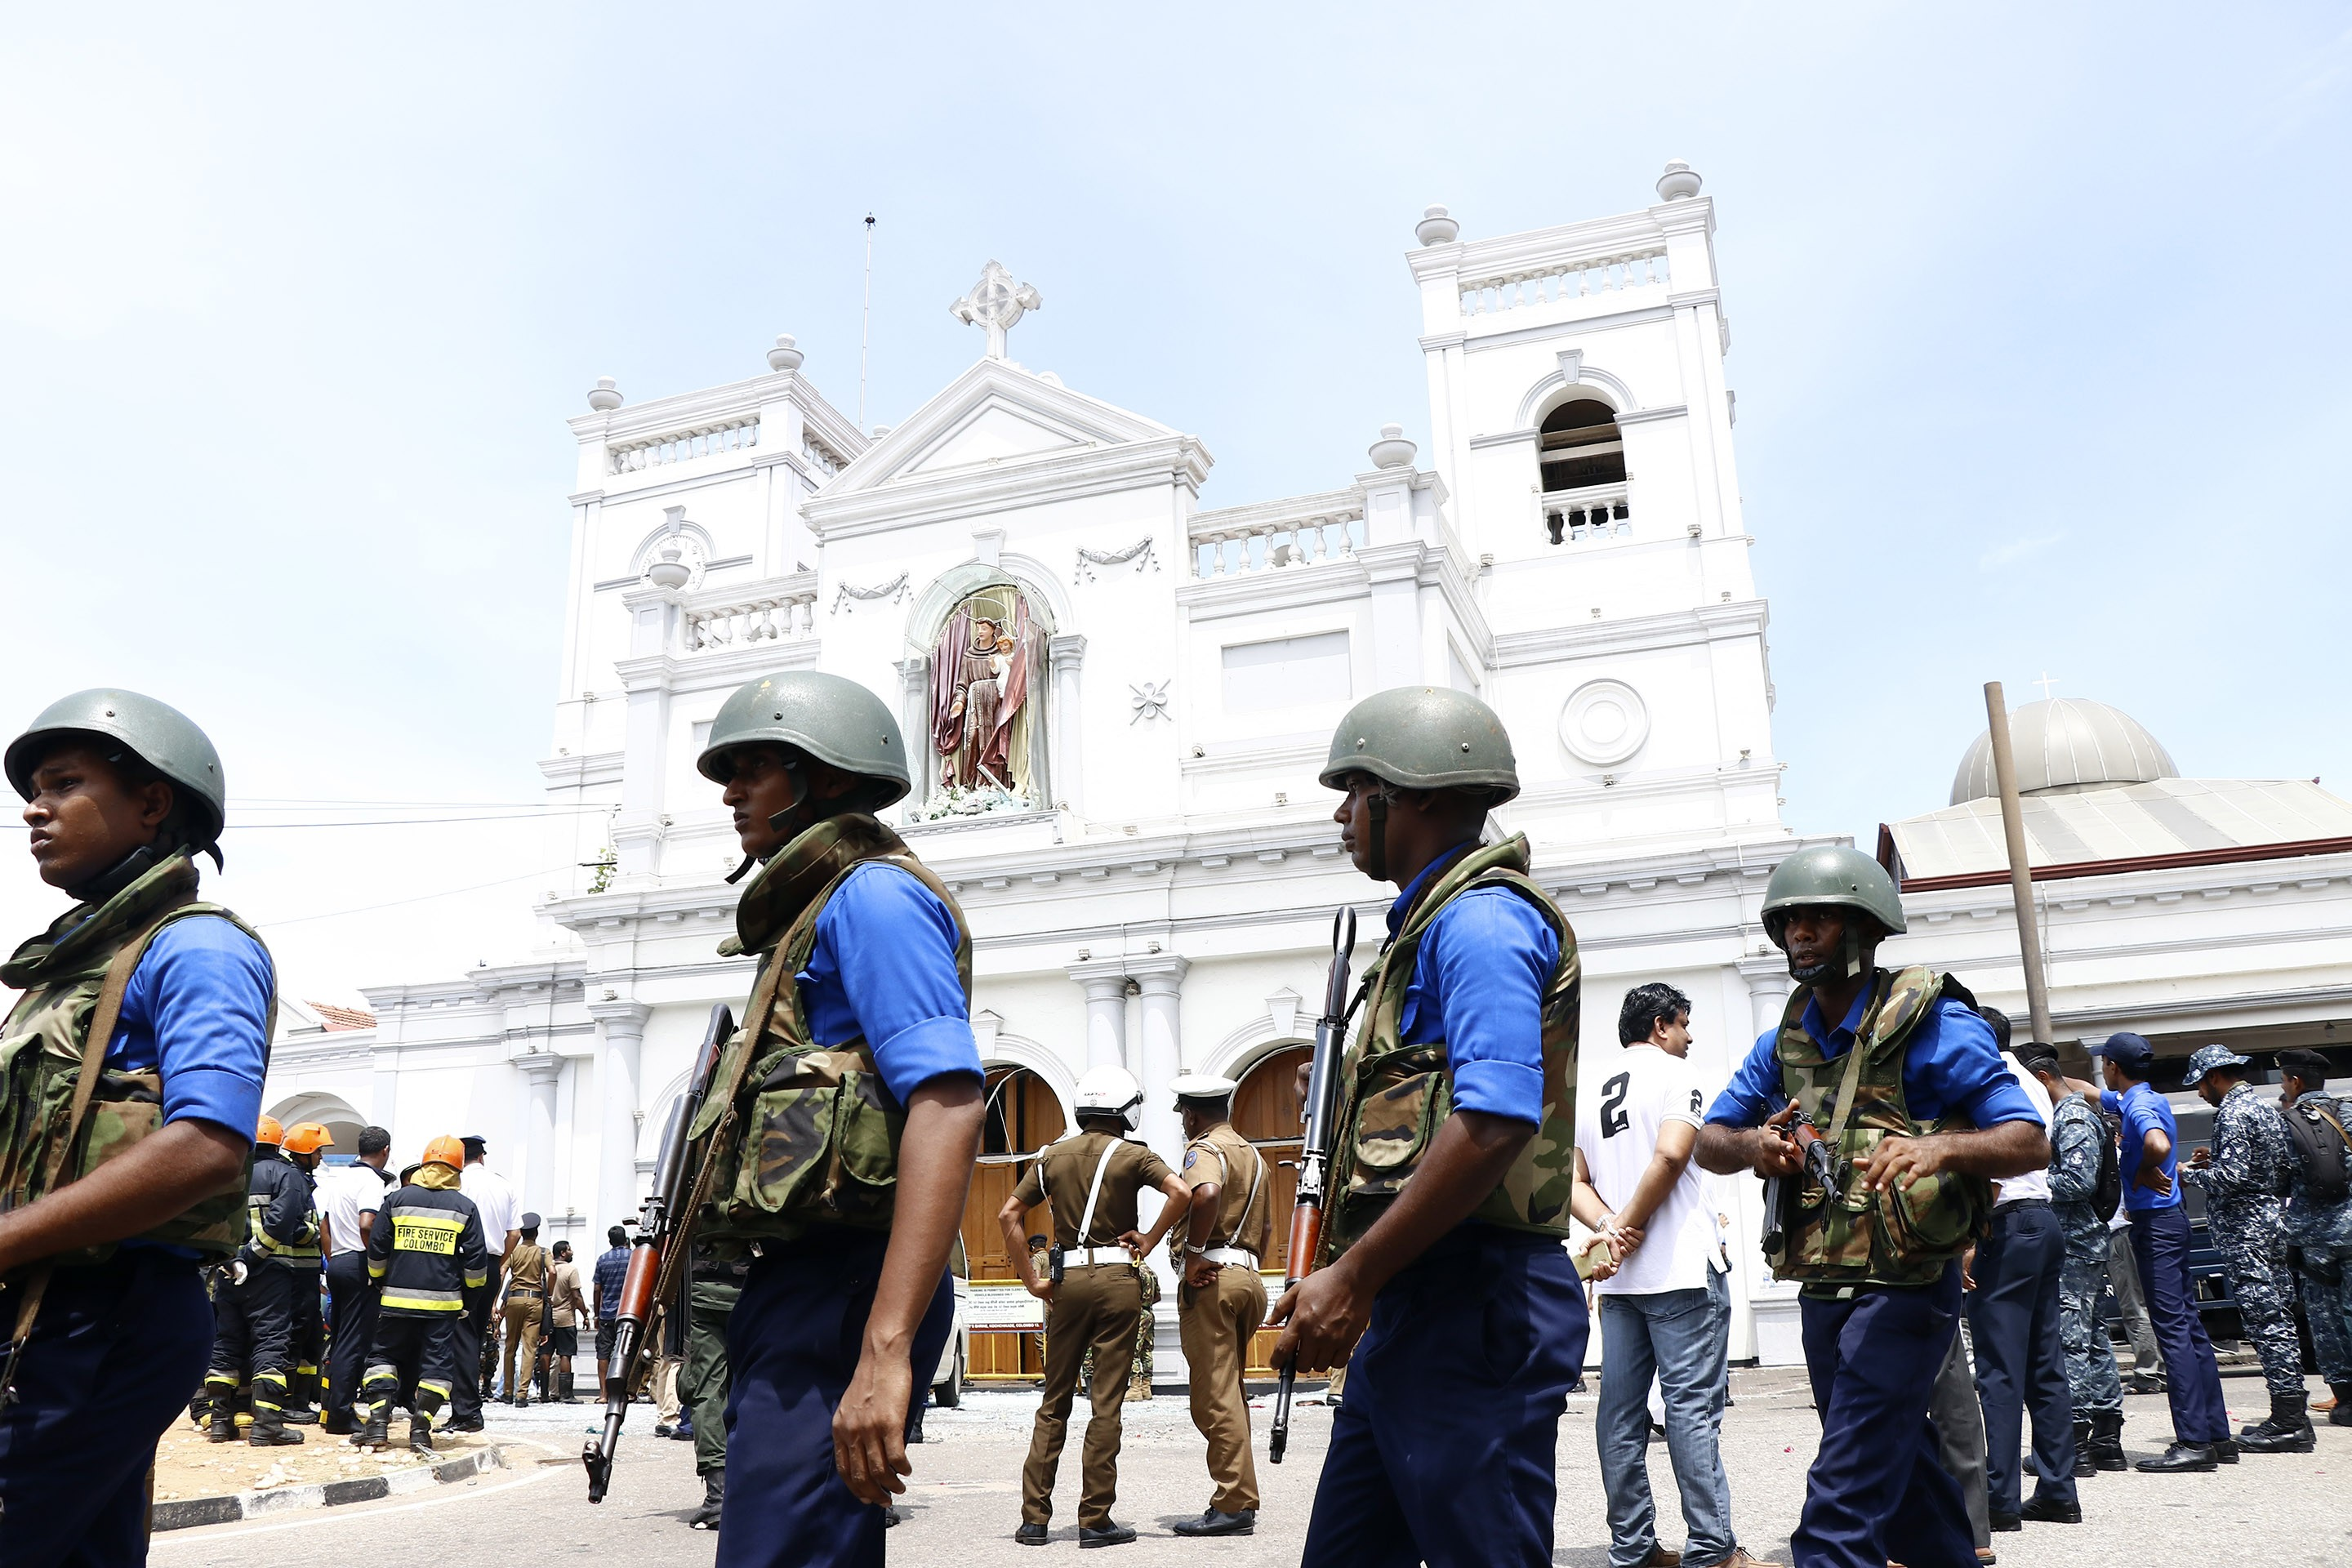 Sri Lanka bombings: eight arrests after eight explosions kill 207, injure hundreds in bloody Easter Sunday attacks